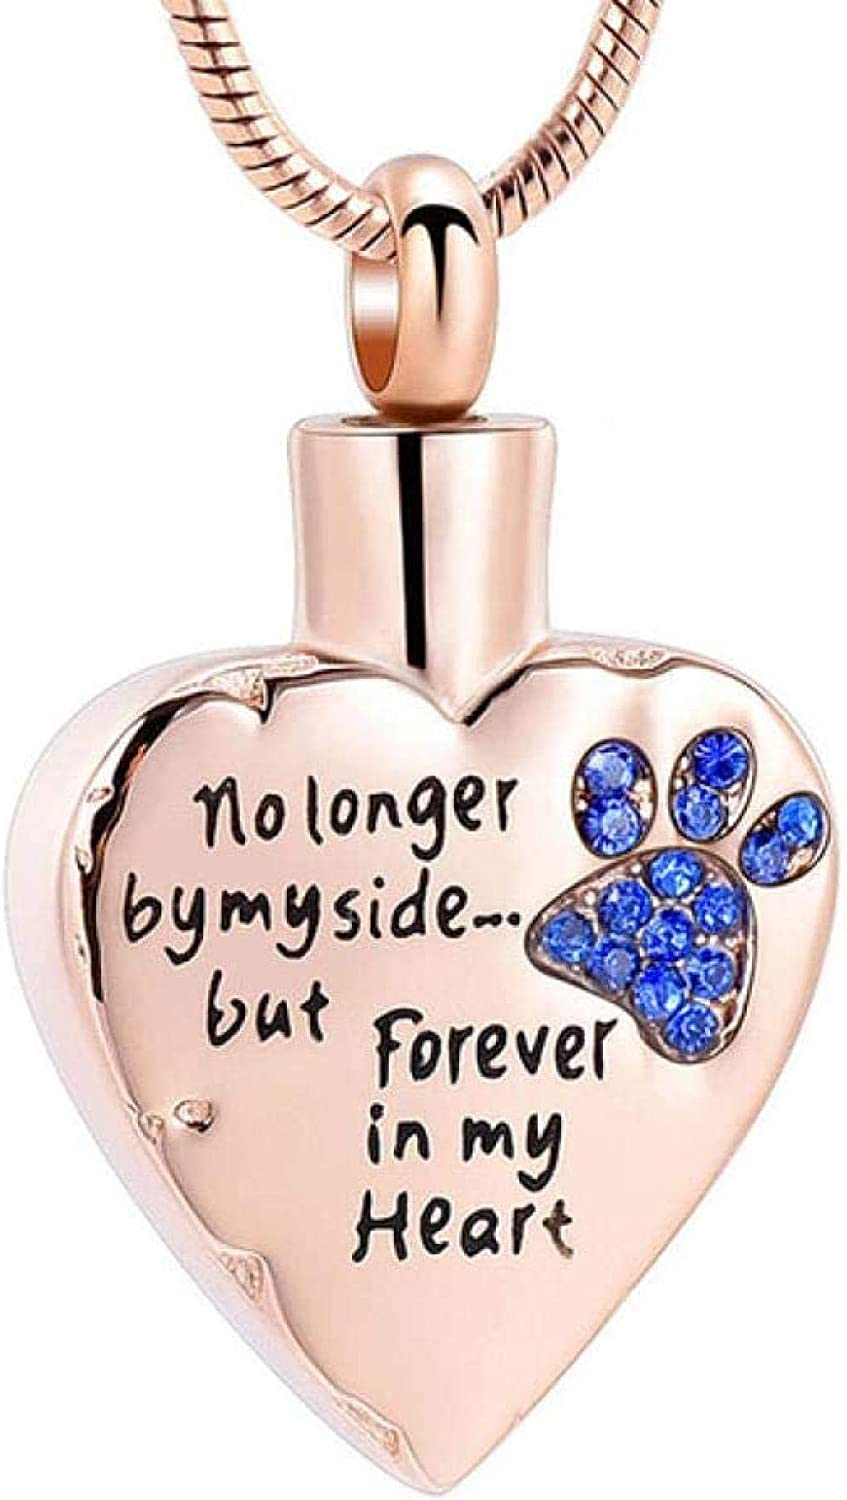 Ashes Memorial No Longer by My Side but Forever in My Heart Cremation Jewelry for Ashes Stainless Steel Pet Paw Keepsake Memorial Urn Necklace